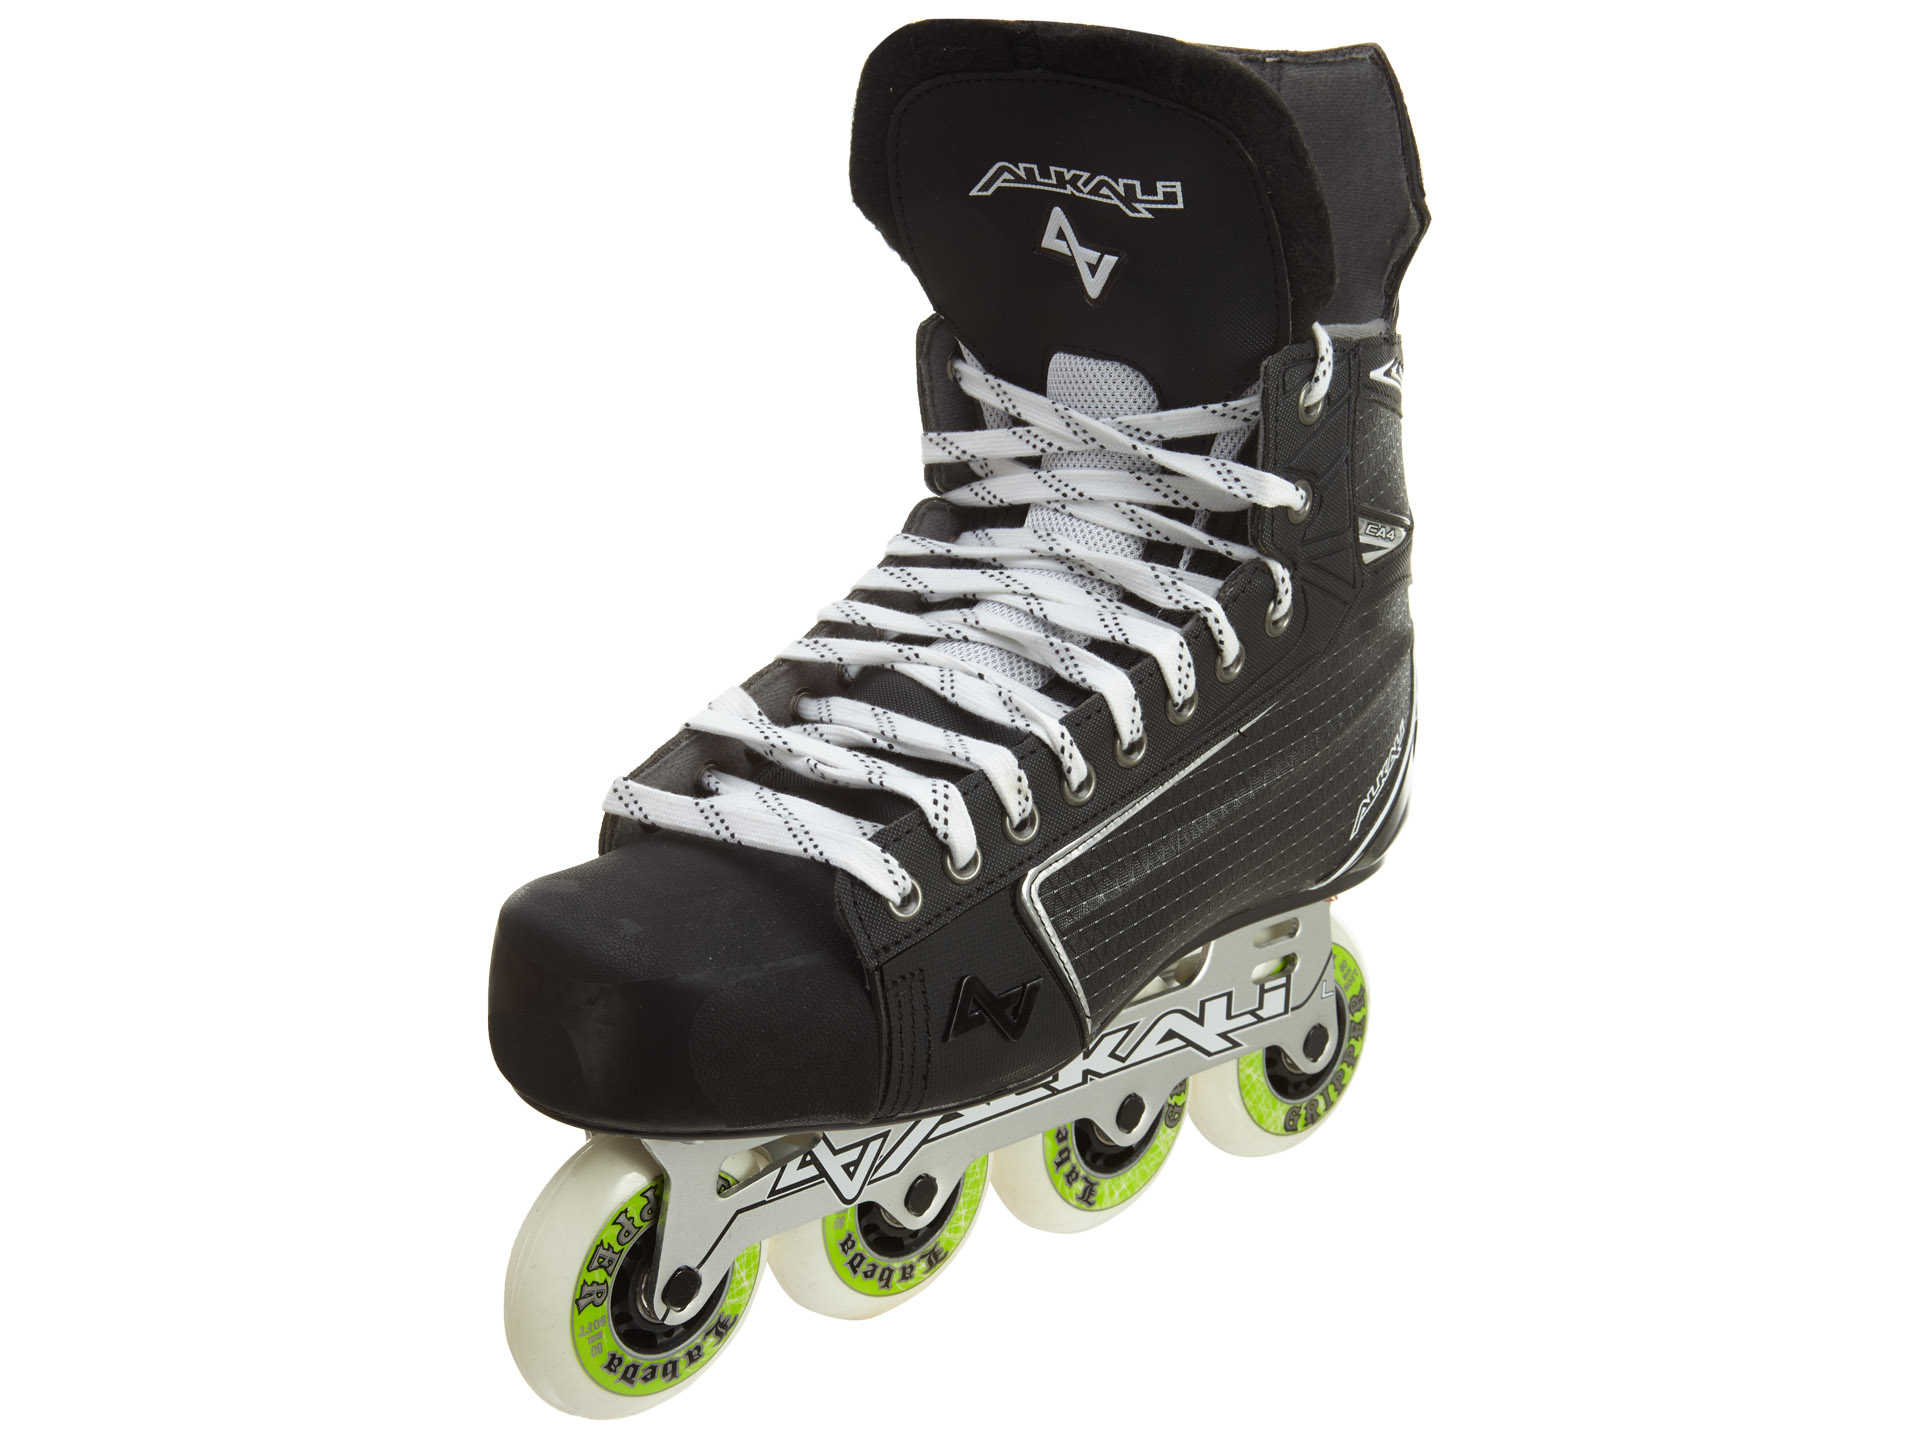 Alkali Hockey Ca4 Inline Hockey Skates Mens Style : 1301052 by